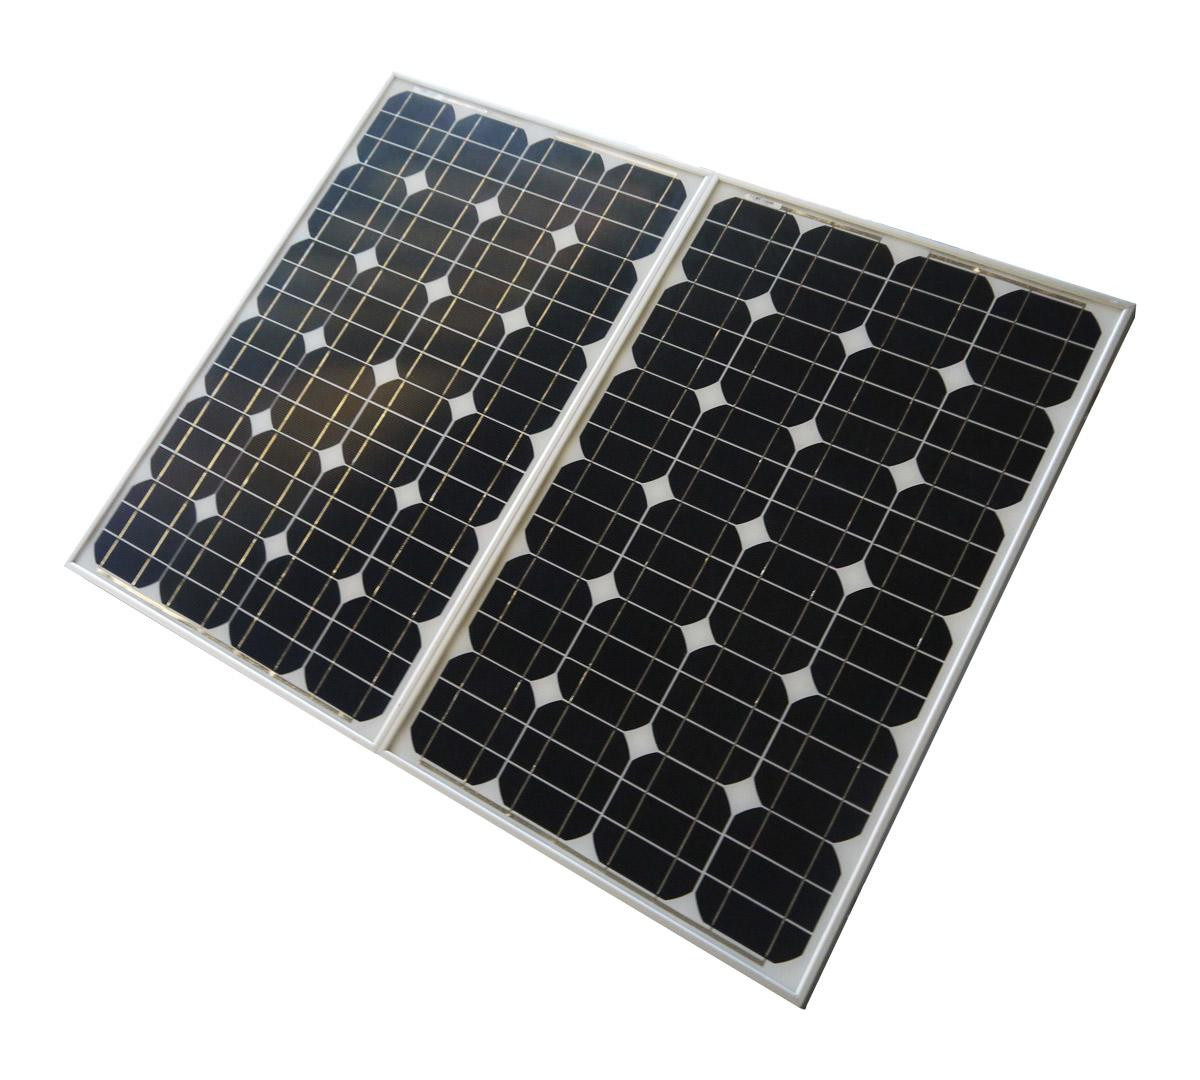 Embroidery Kits for Beginners Lovely Folding solar Panel Kits Sg F 2 50w Of Luxury 47 Images Embroidery Kits for Beginners